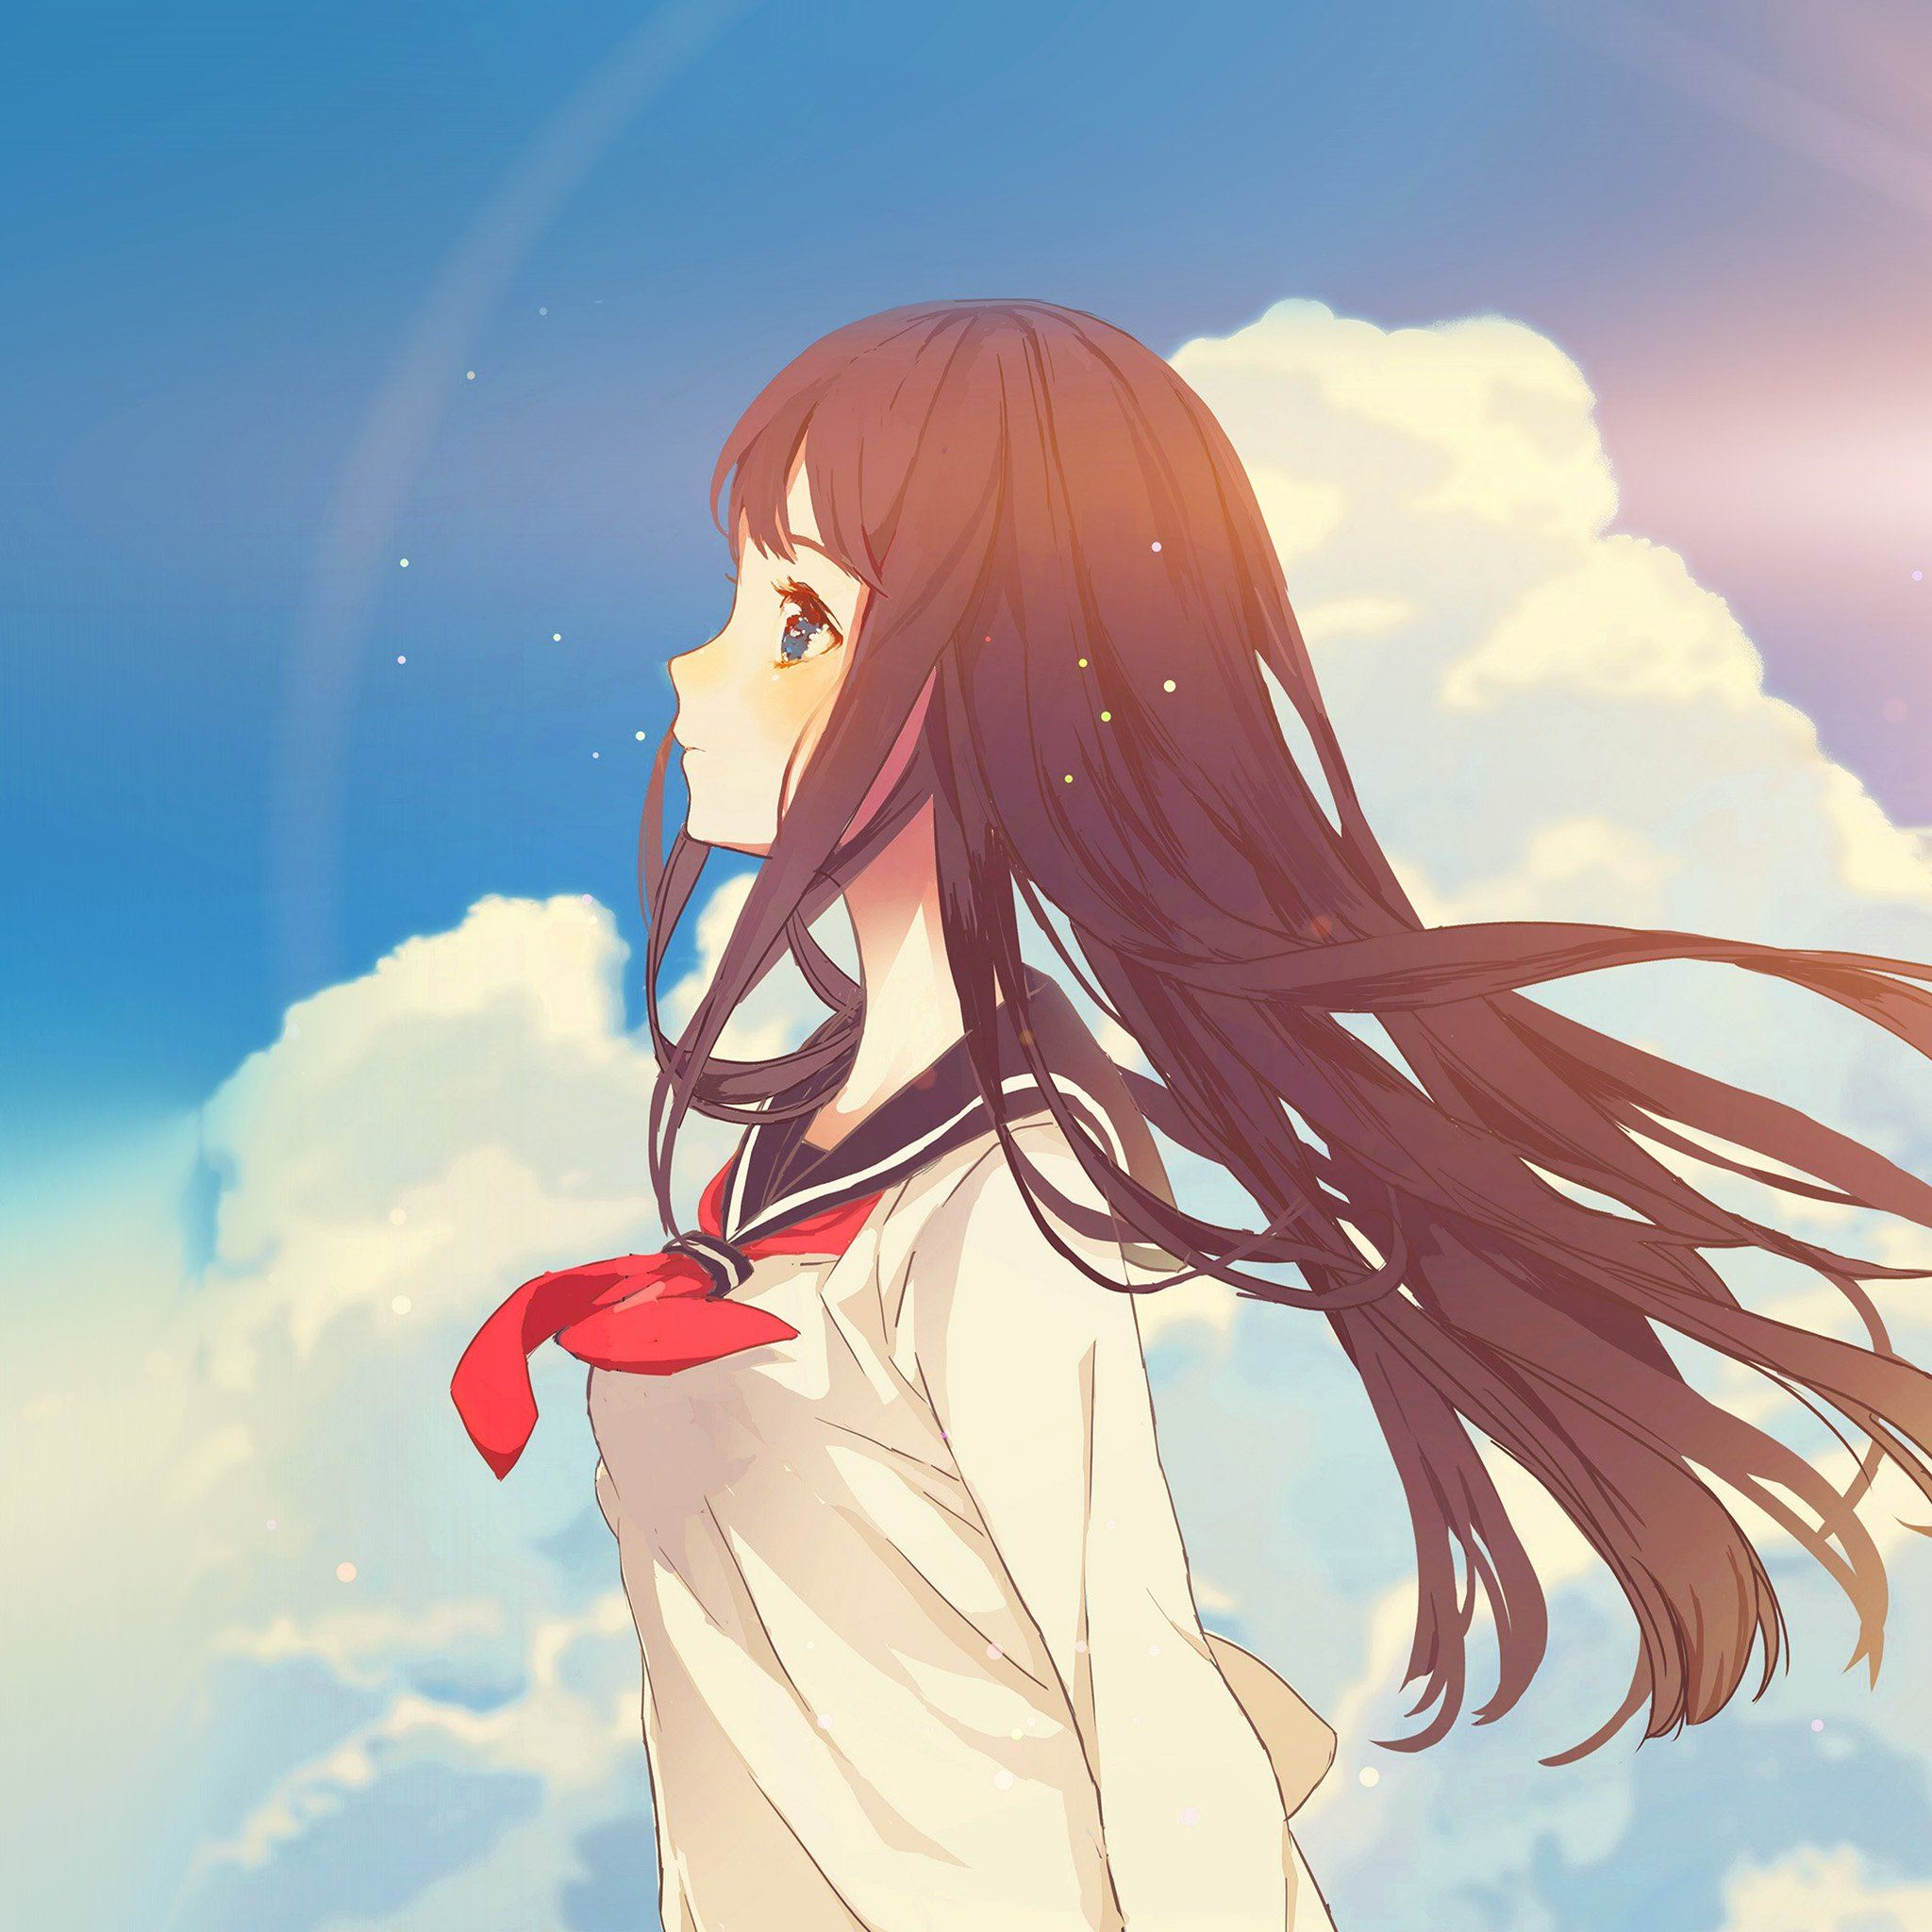 Cute Girl Illustration Anime Sky Flare Ipad Air Wallpapers Free Download